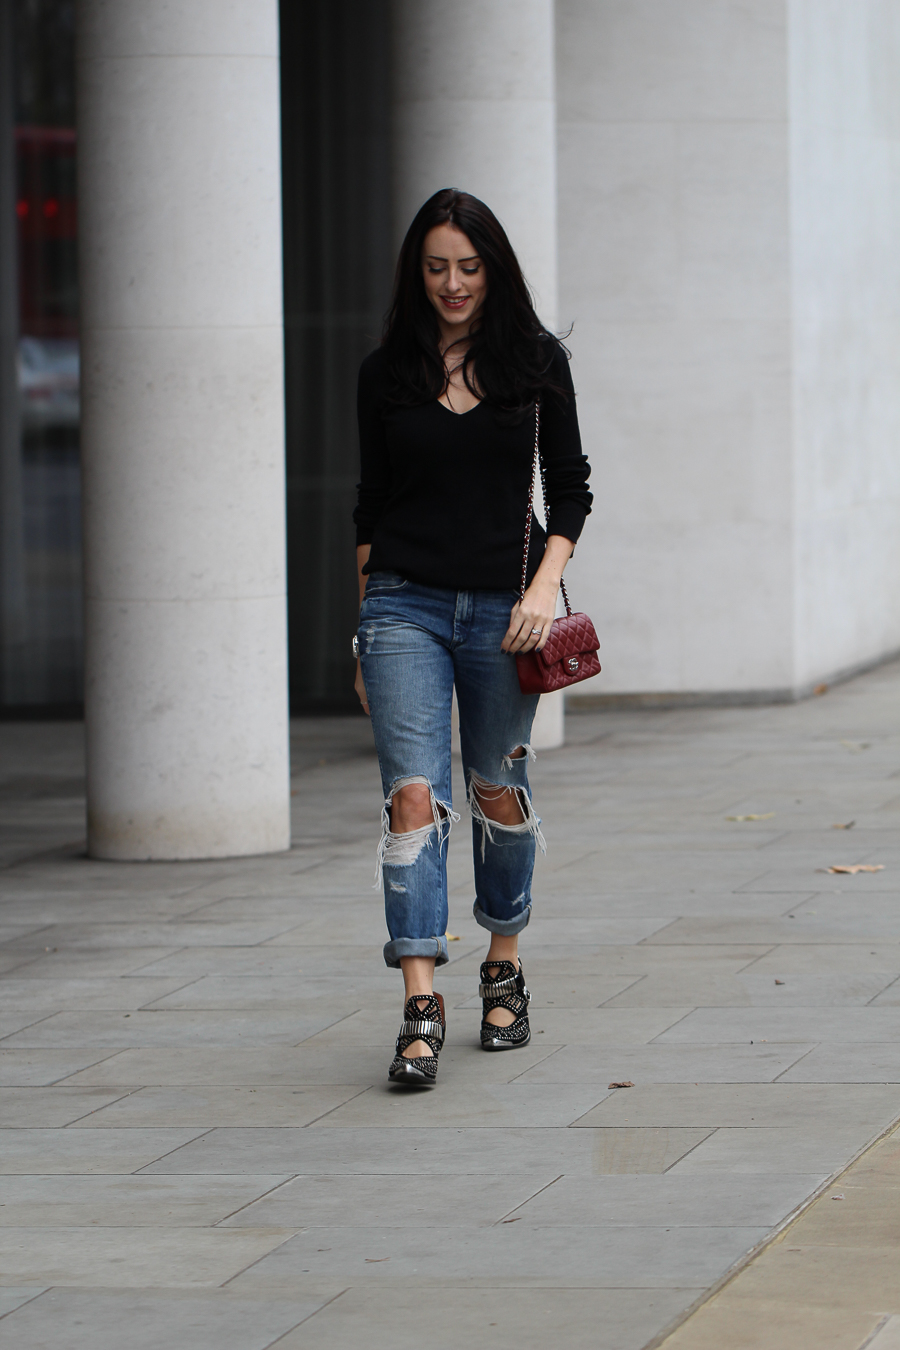 Sabrina Chakici - Clutch and Carry on - UK Style blog - street style london, folli follie watch, uk travel blogger-7